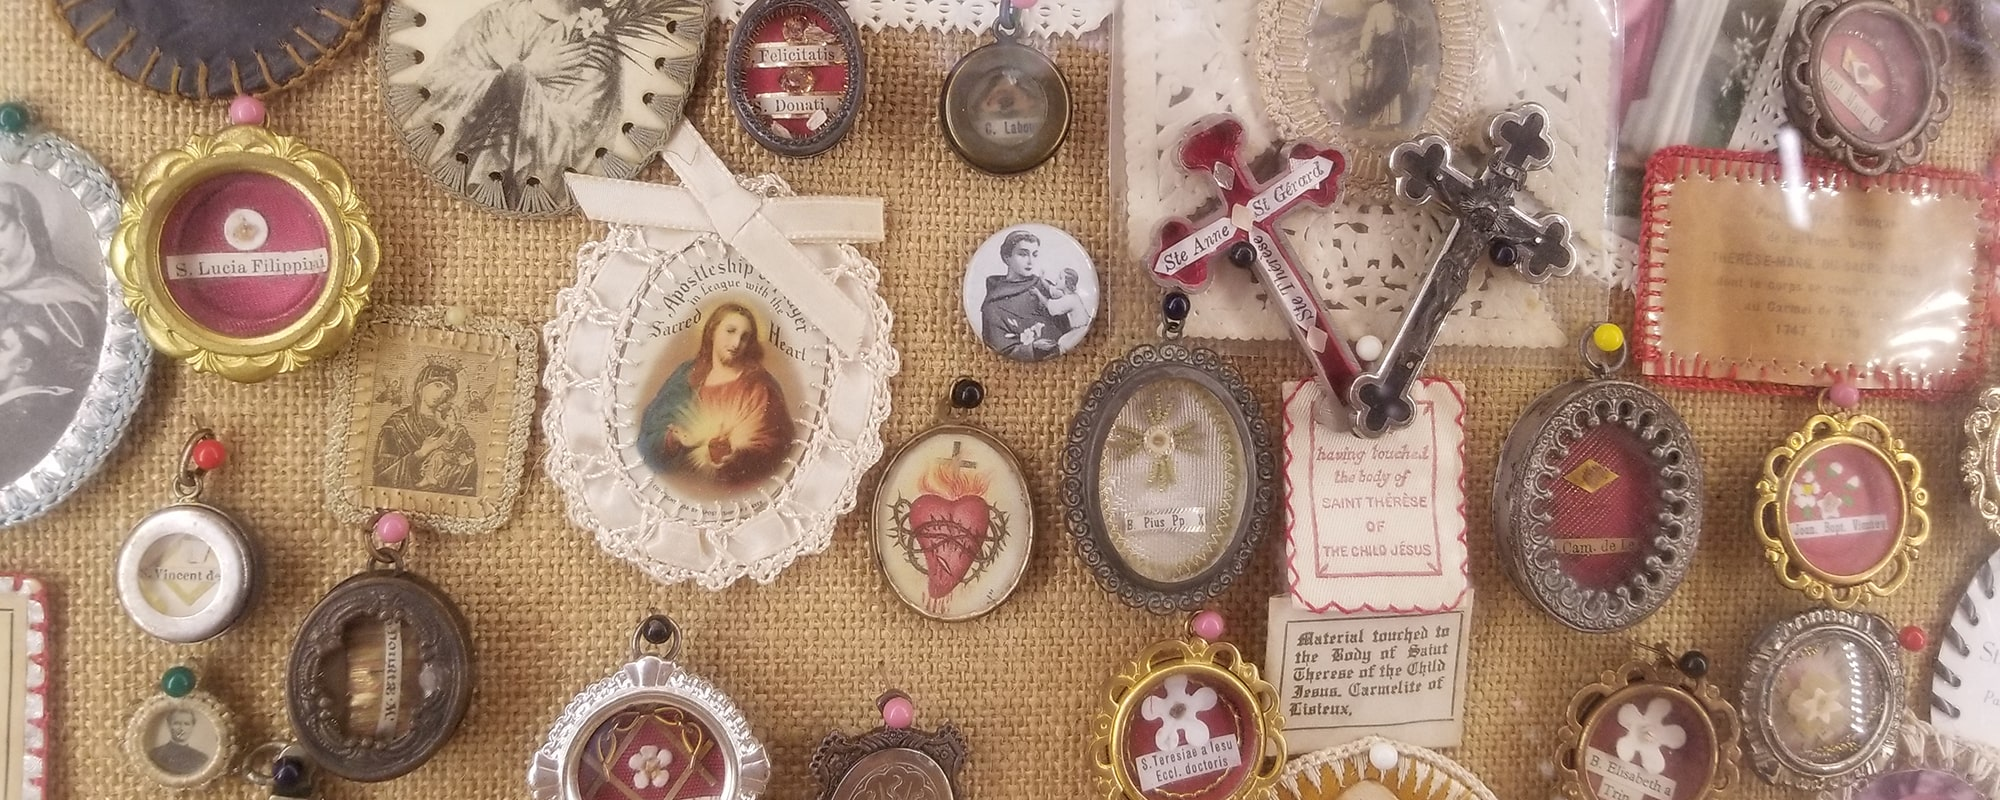 Saintly relics at the Seelos Shrine